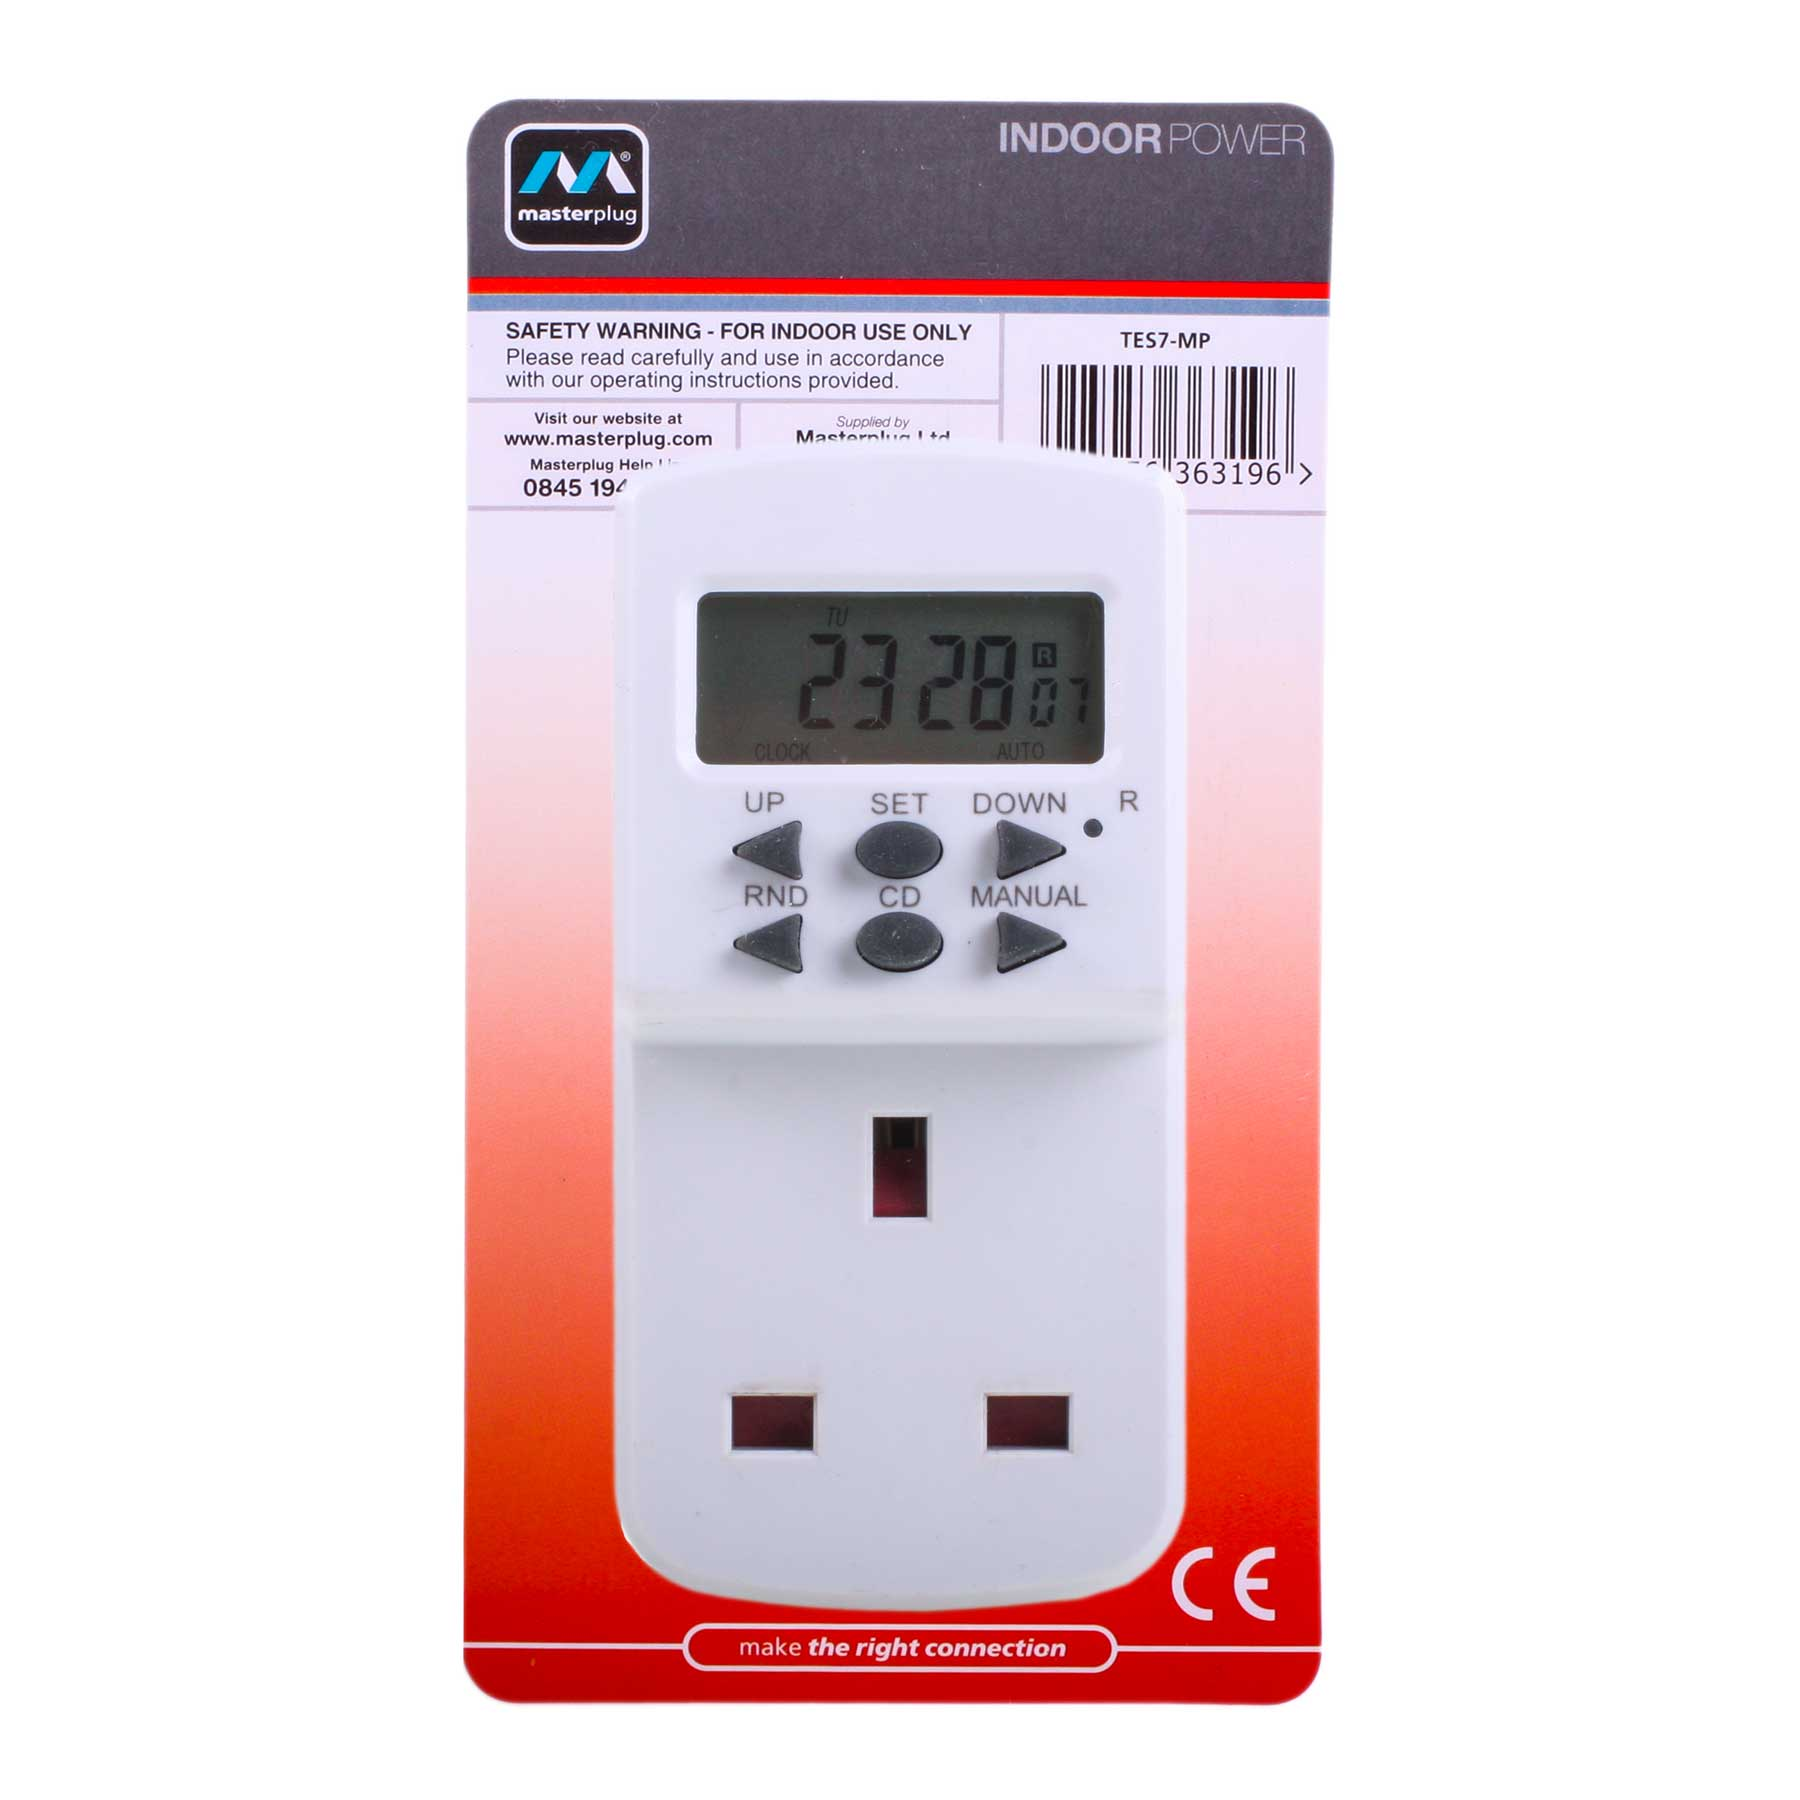 Masterplug Te7 Mp 7 Day Plug In Digital Timer Switch Daily Weekly Http Wwwschematicdiagramcom Electronicdigitalclockhtml